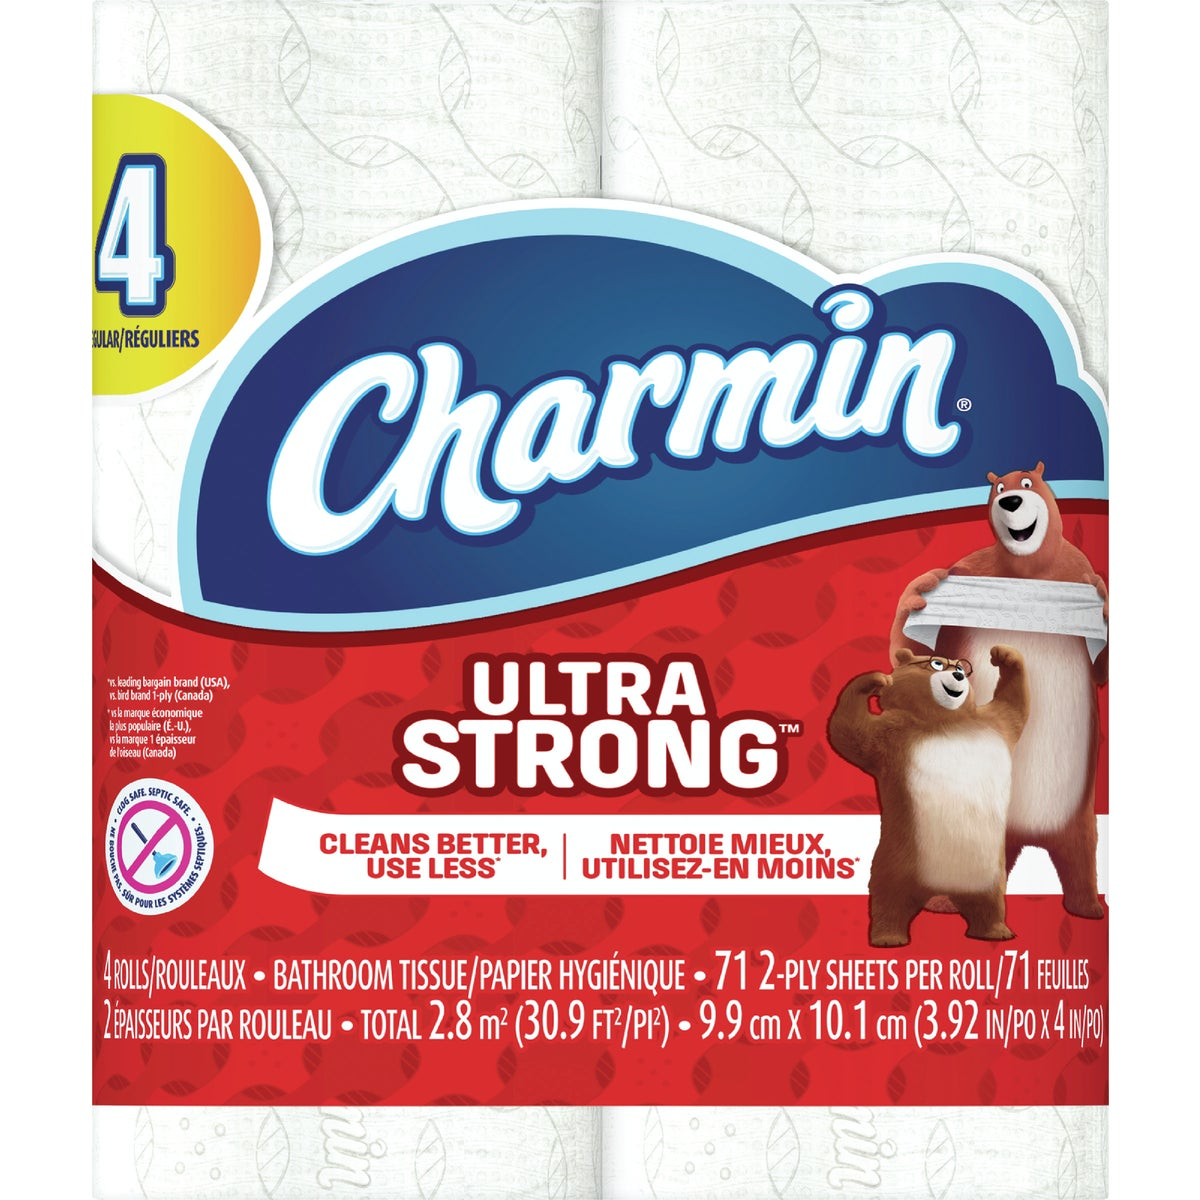 4 REG ROLL CHARM TISSUE - 86529 by Procter & Gamble